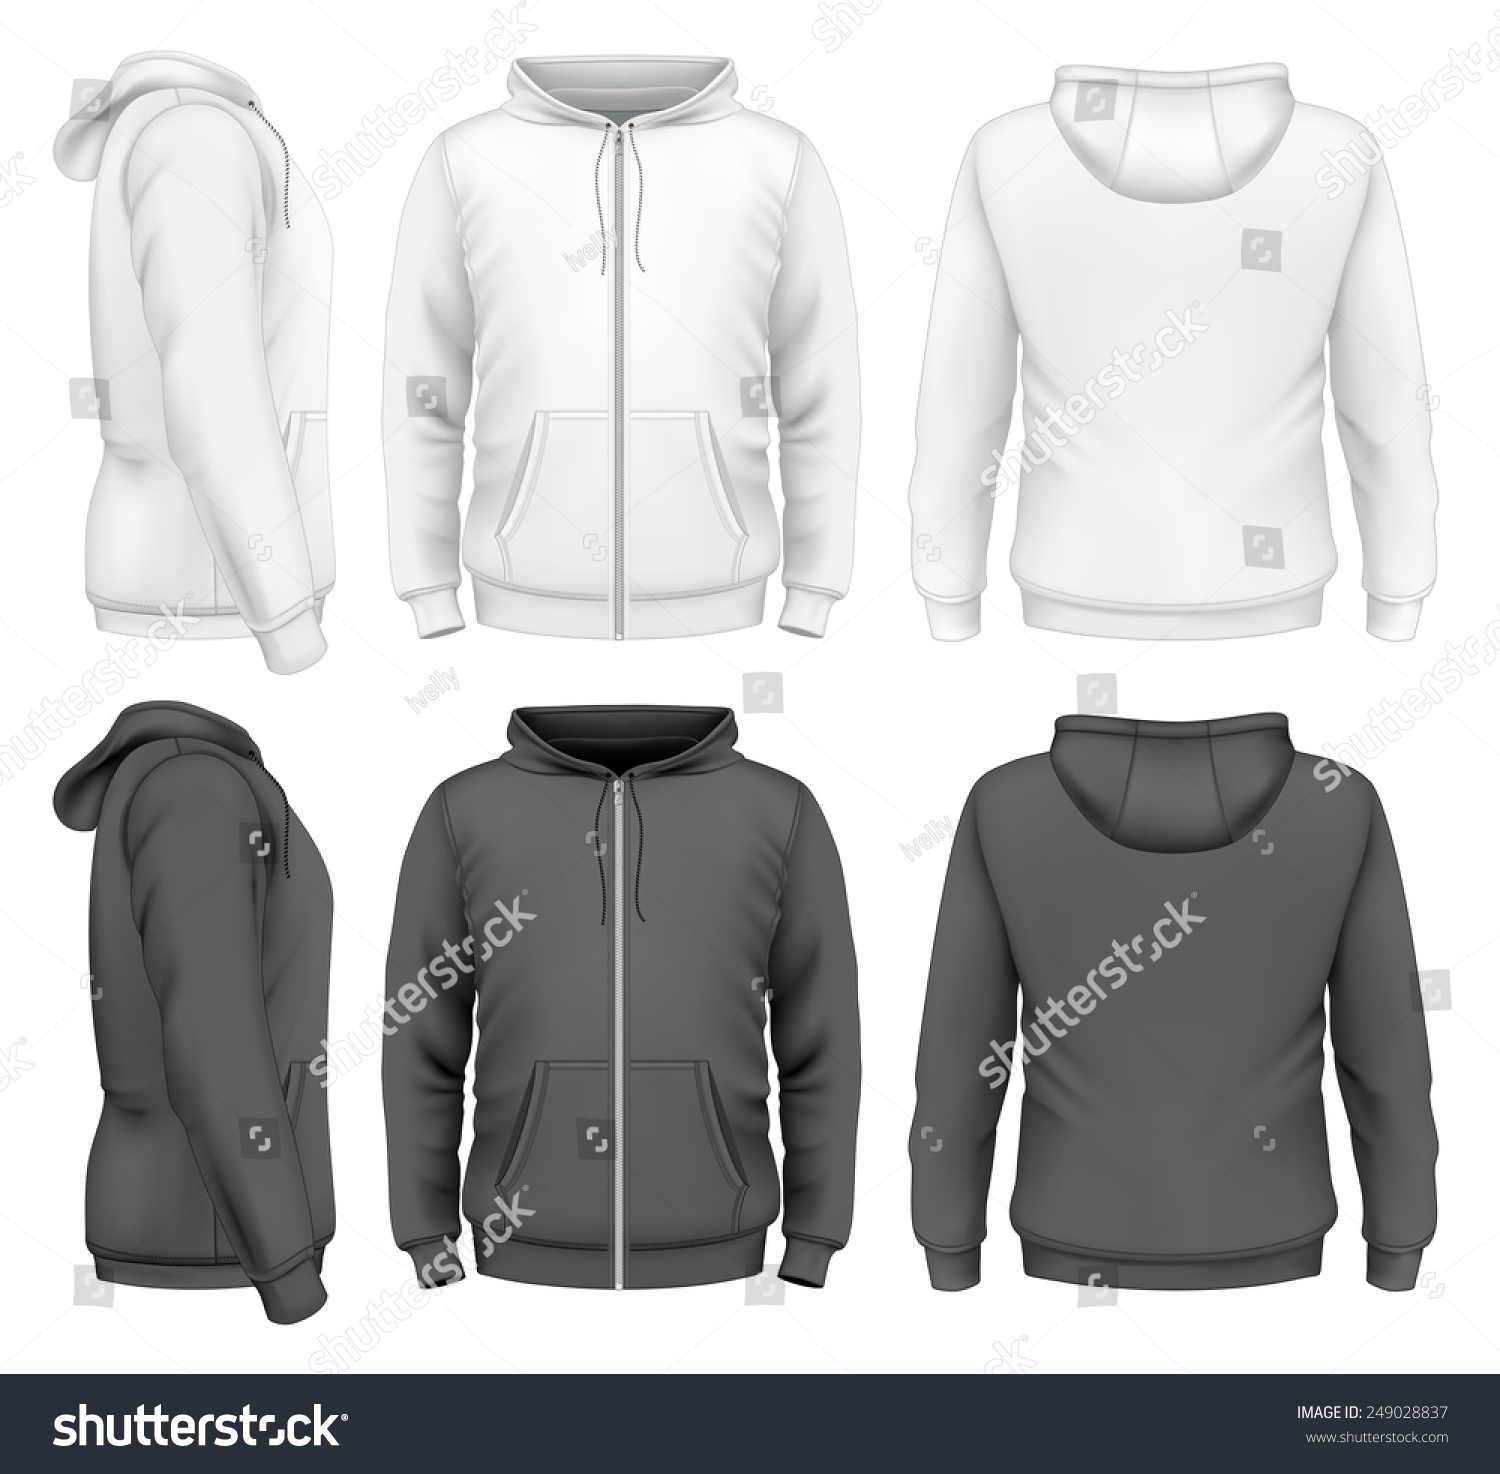 Mens Zip Hoodie White Black Design Stock Vector 249028837 ...